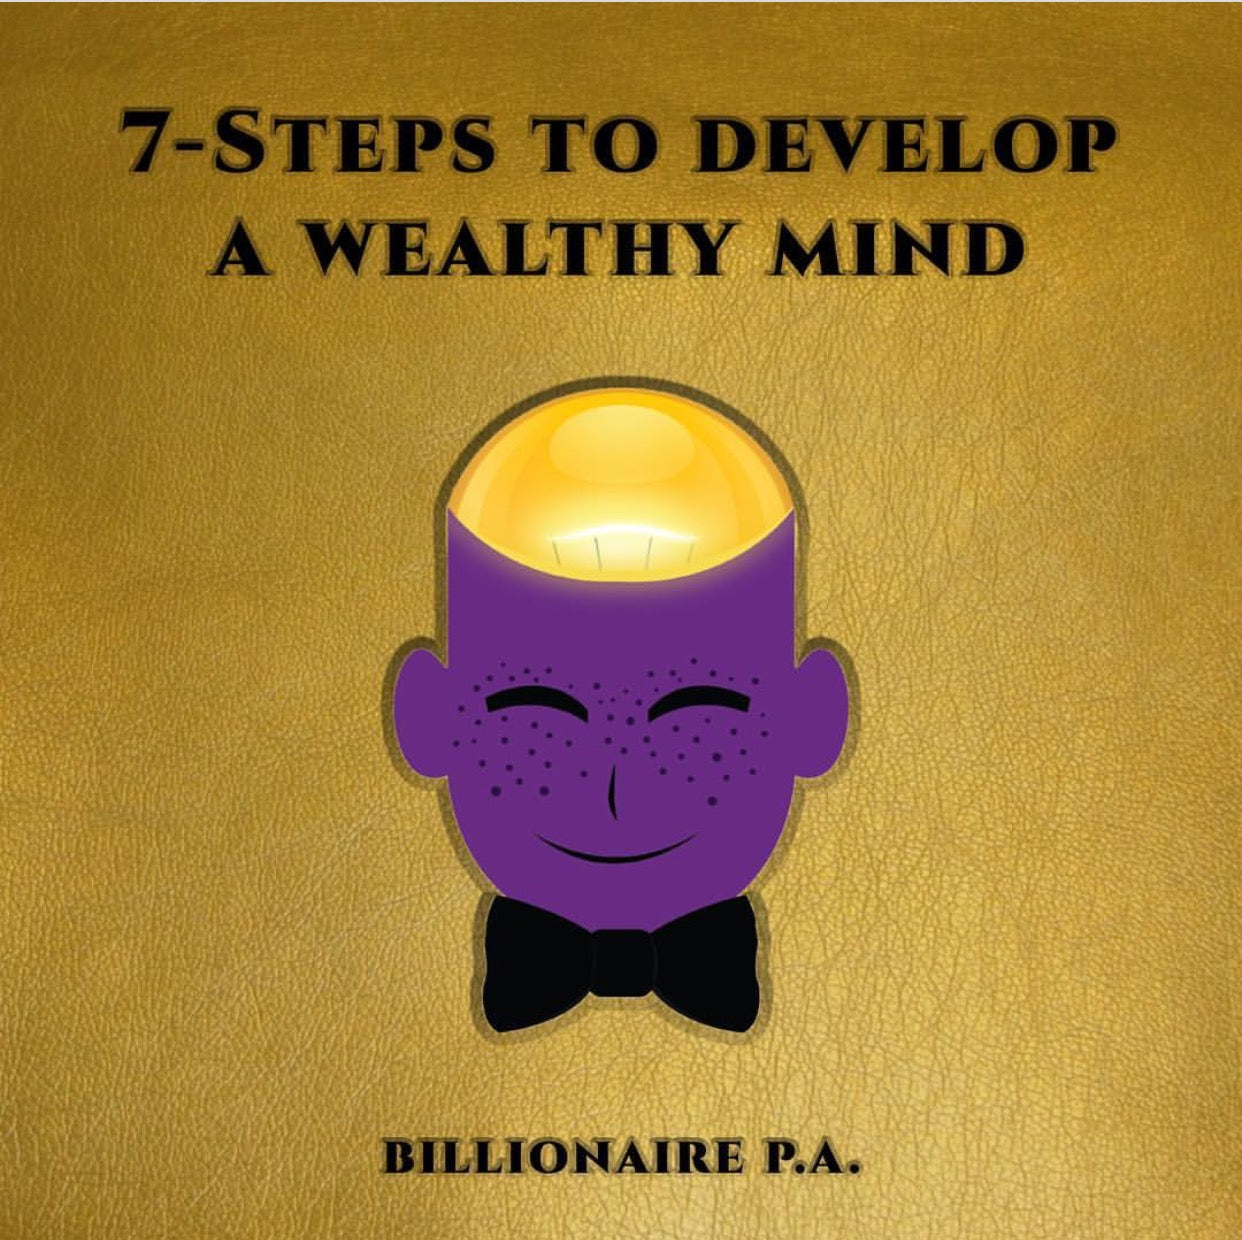 My Mind Is Wealthy - Wealth 1 - DIGITAL E-BOOK EDITION By